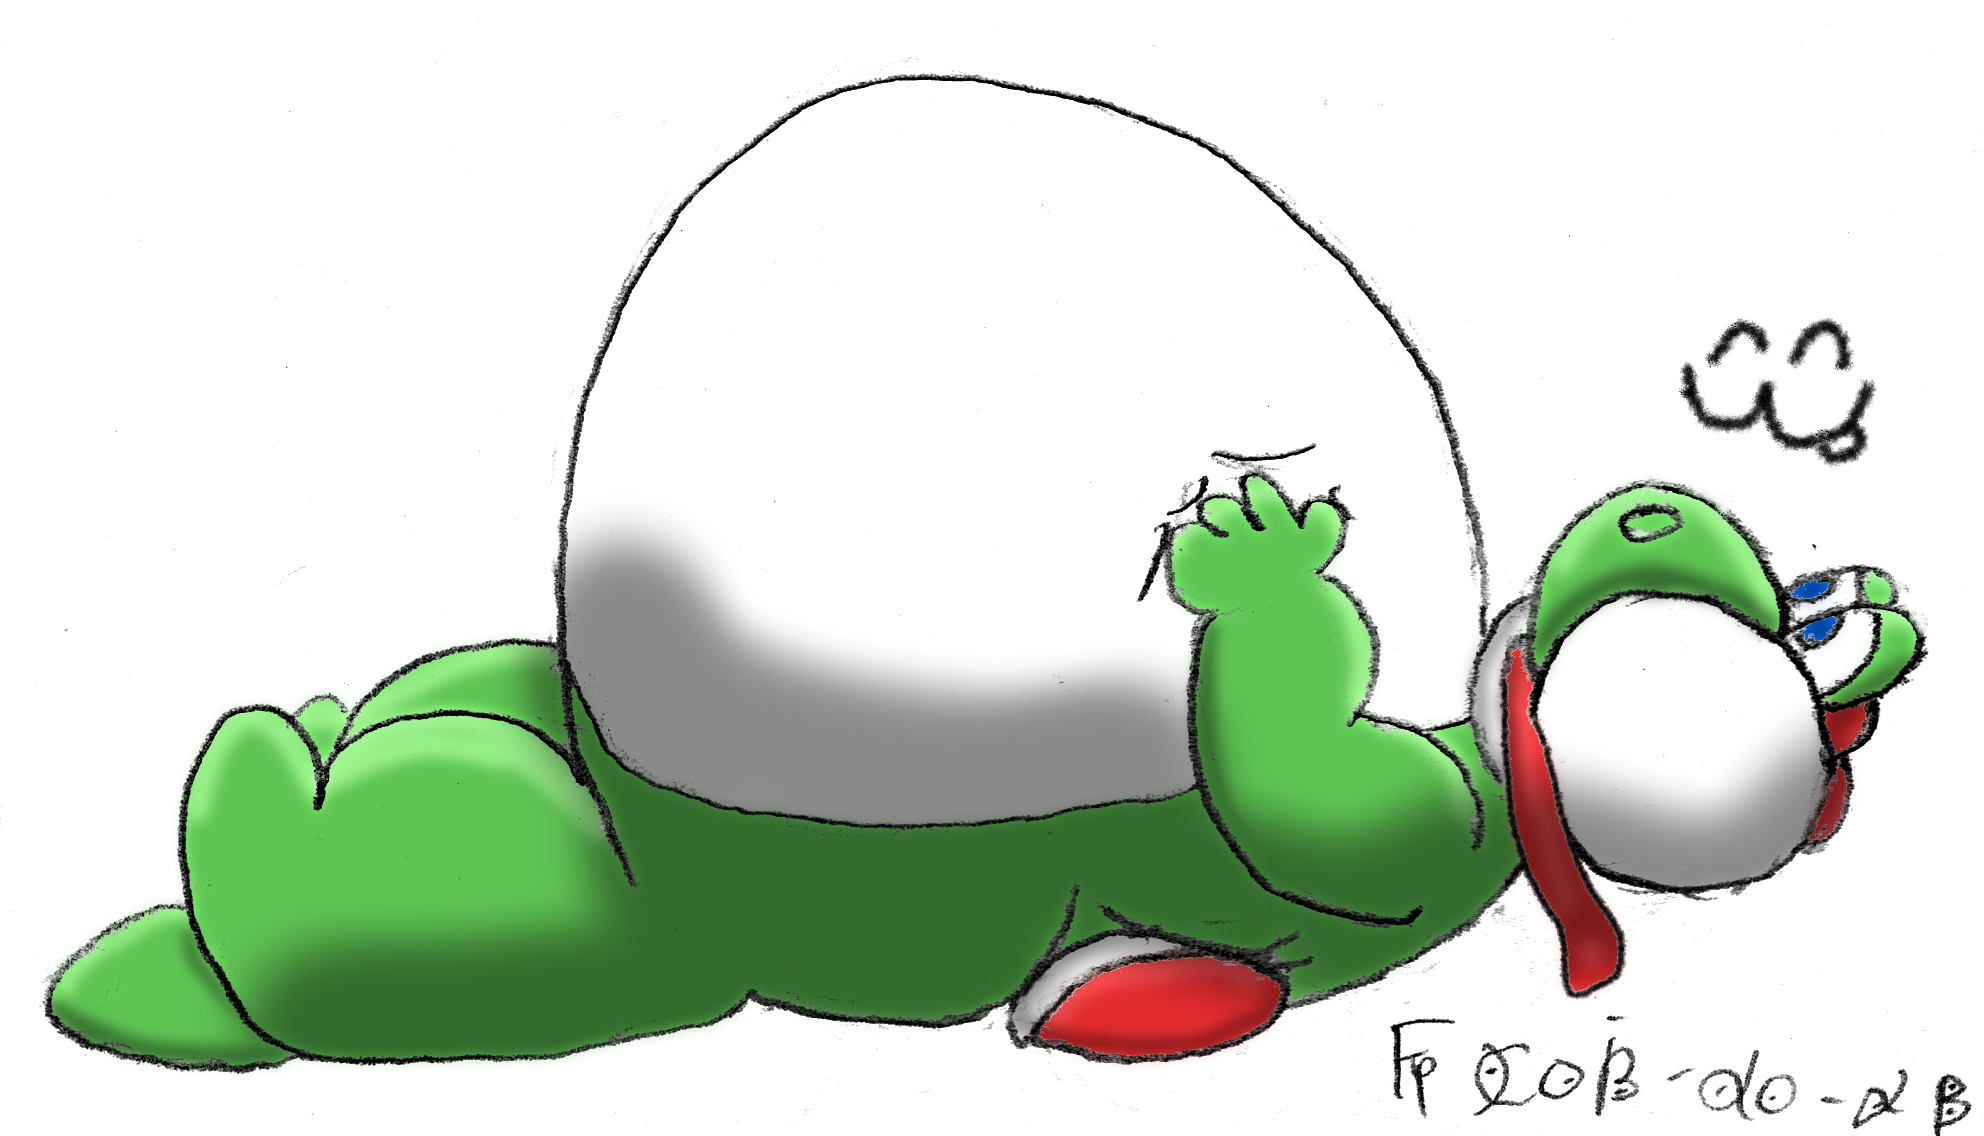 [Comic] Yoshi's surprise 3 of 3 by fatty-piggy